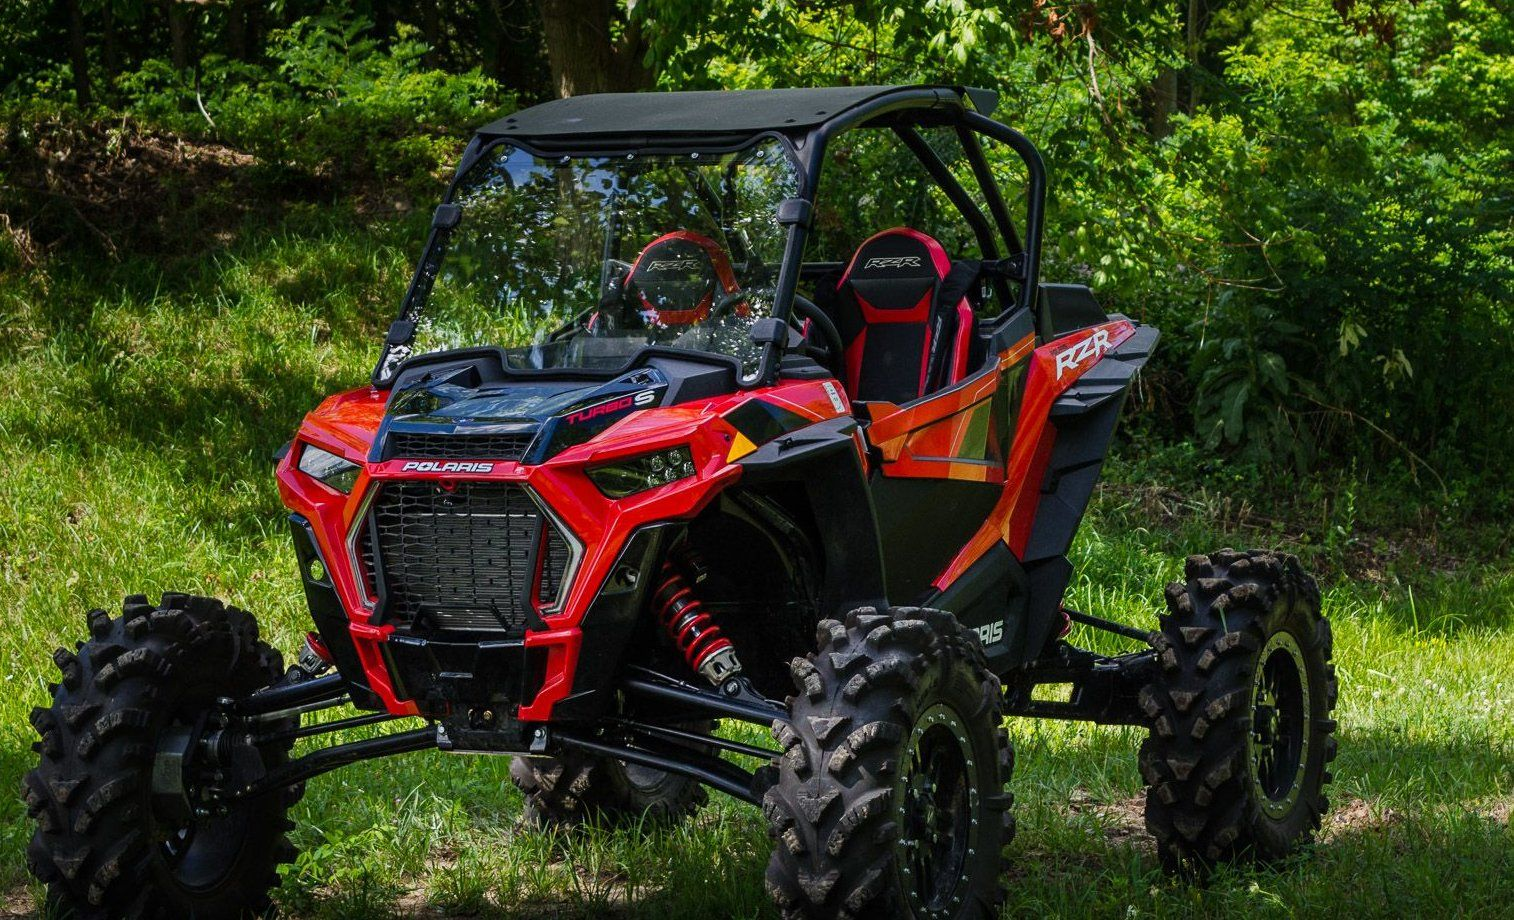 Super Atv Polaris Rzr Xp Turbo S Full Windshield